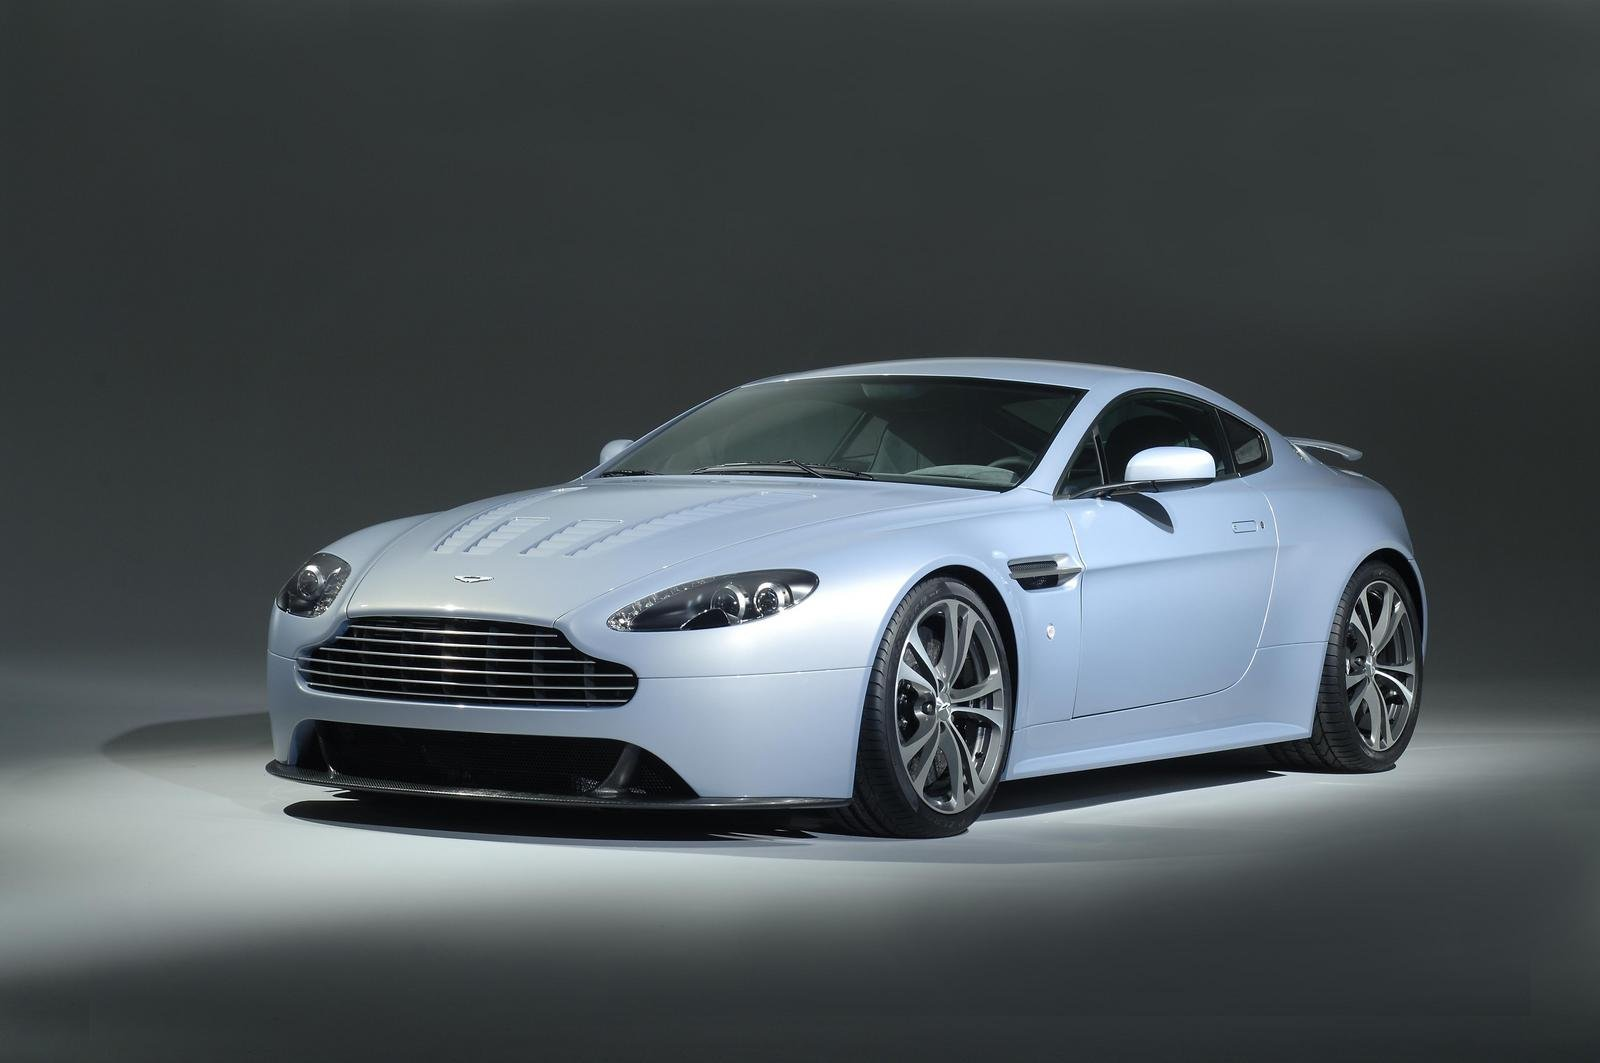 2008 aston martin v12 vantage rs concept review top speed. Black Bedroom Furniture Sets. Home Design Ideas